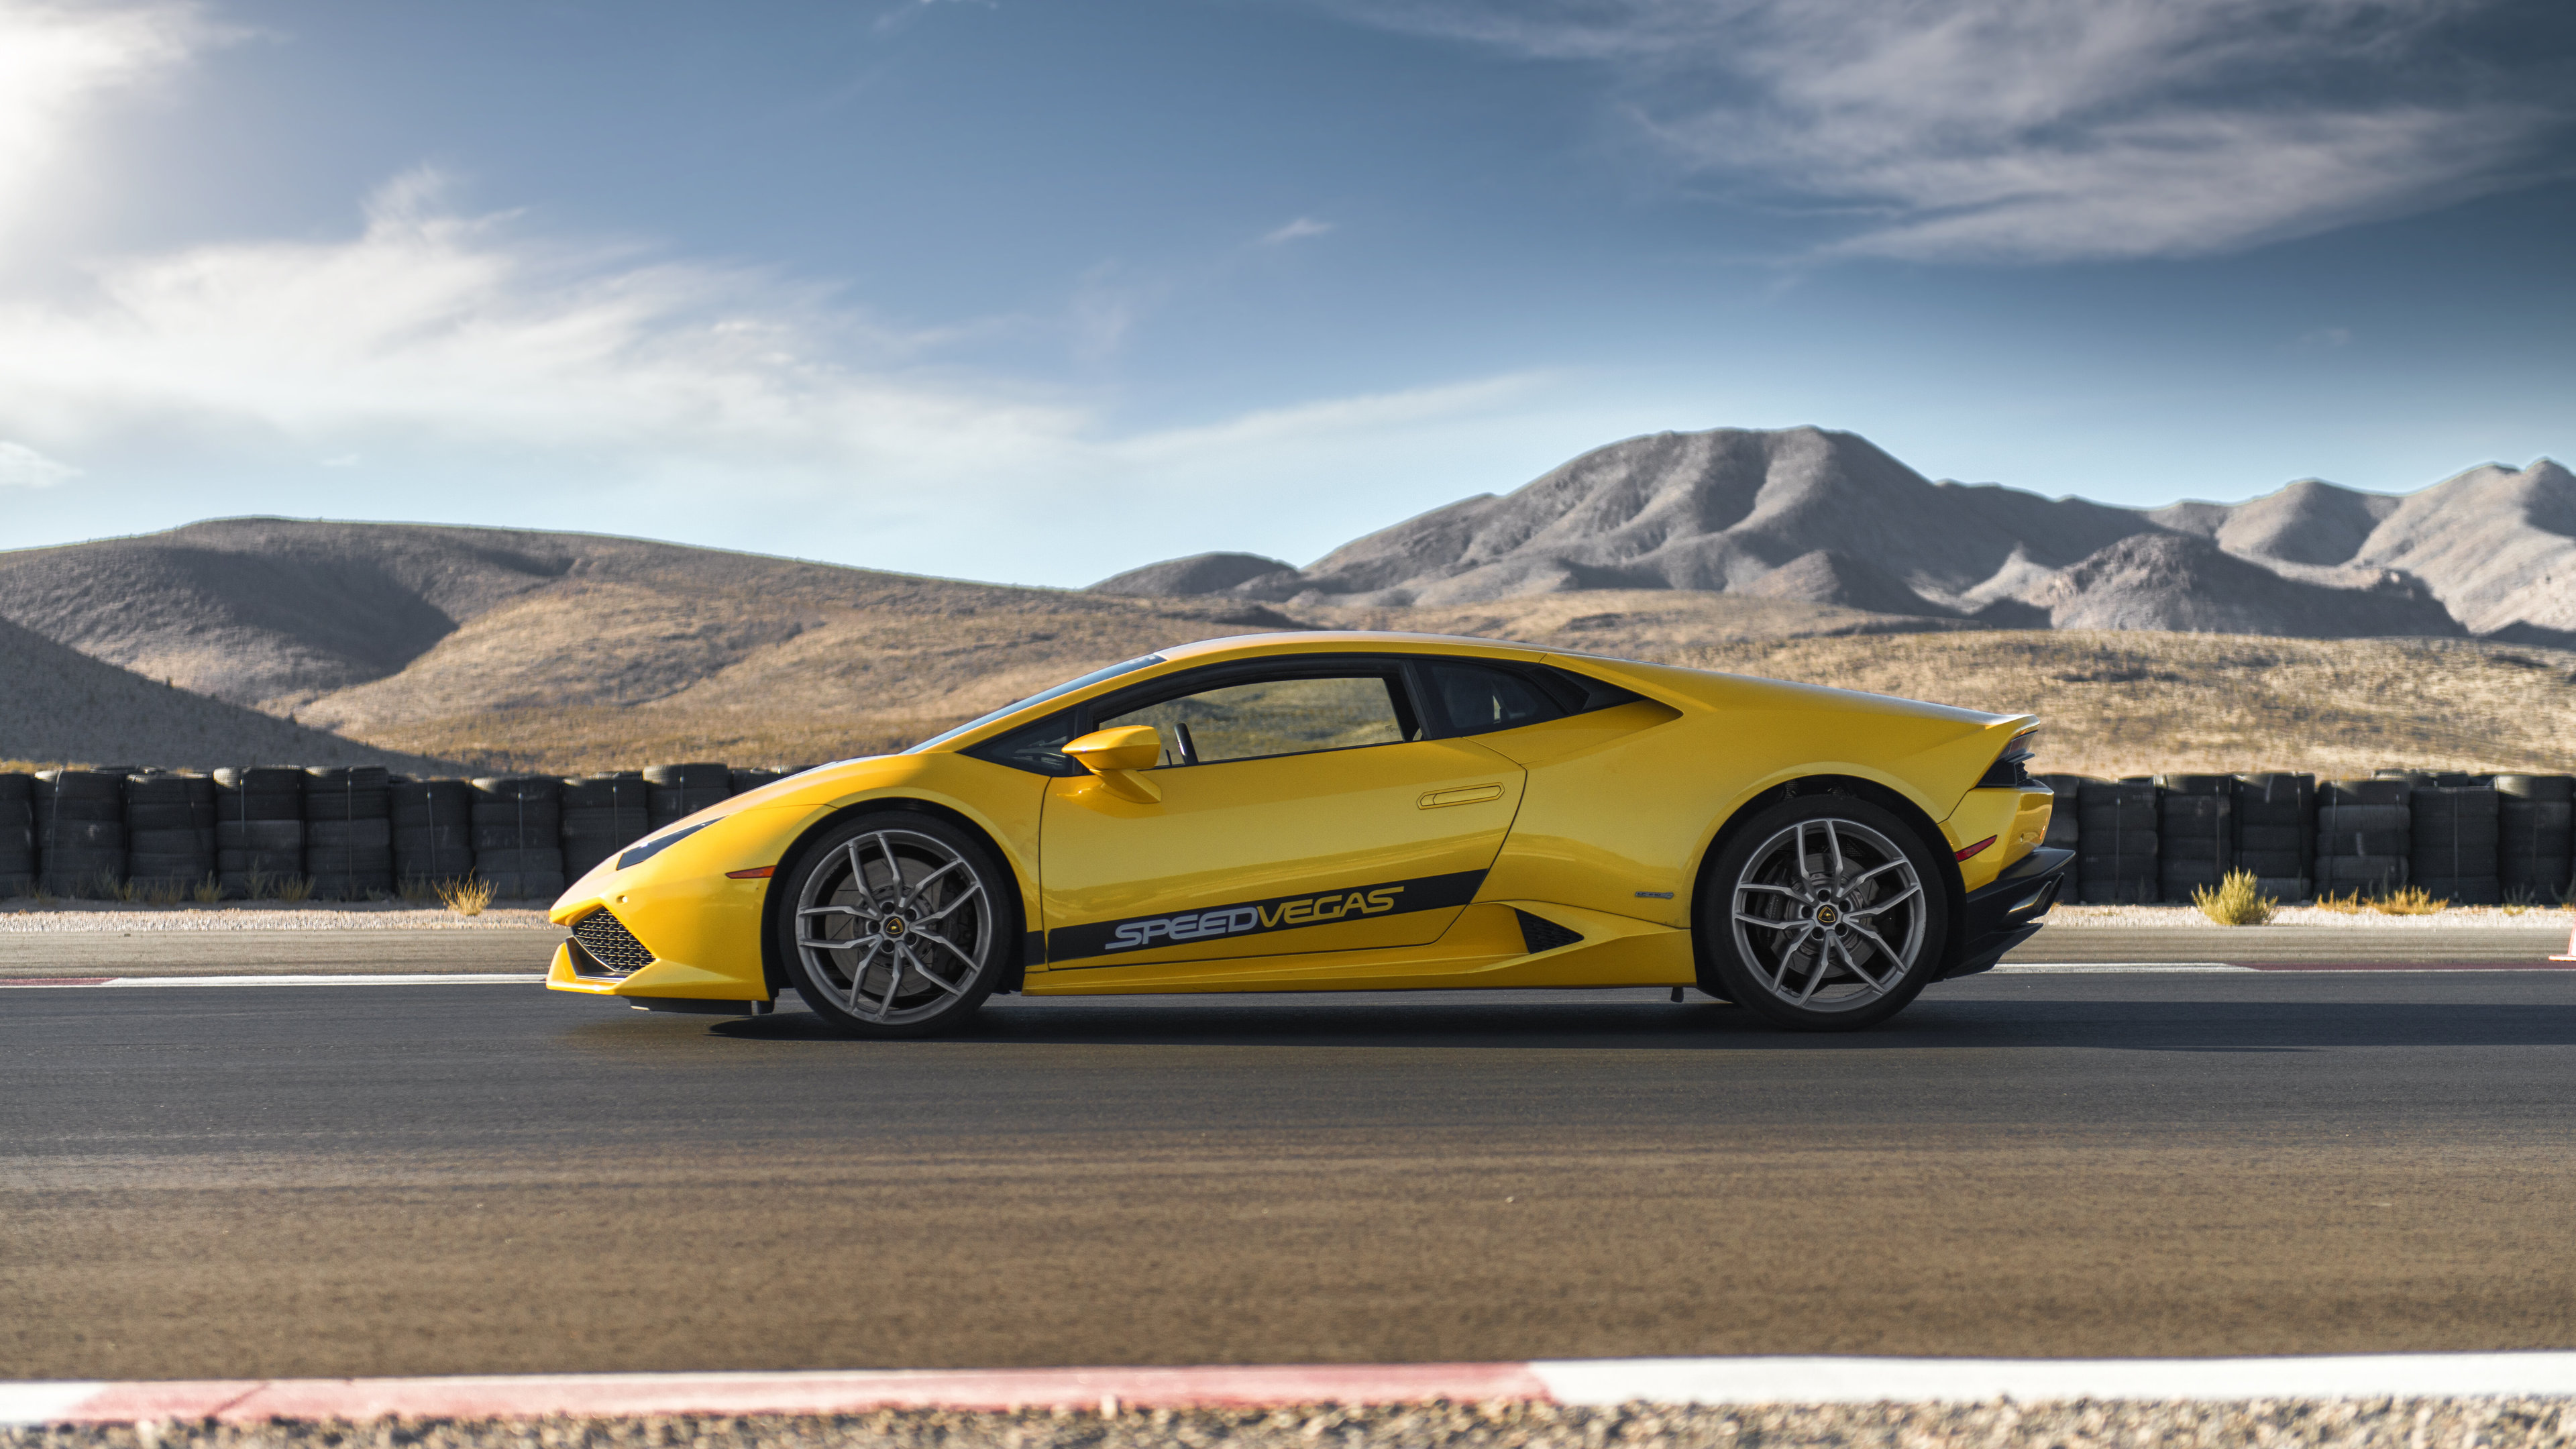 yellow lamborghini huracan 1565054974 - Yellow Lamborghini Huracan - lamborghini wallpapers, lamborghini huracan wallpapers, hd-wallpapers, cars wallpapers, 8k wallpapers, 5k wallpapers, 4k-wallpapers